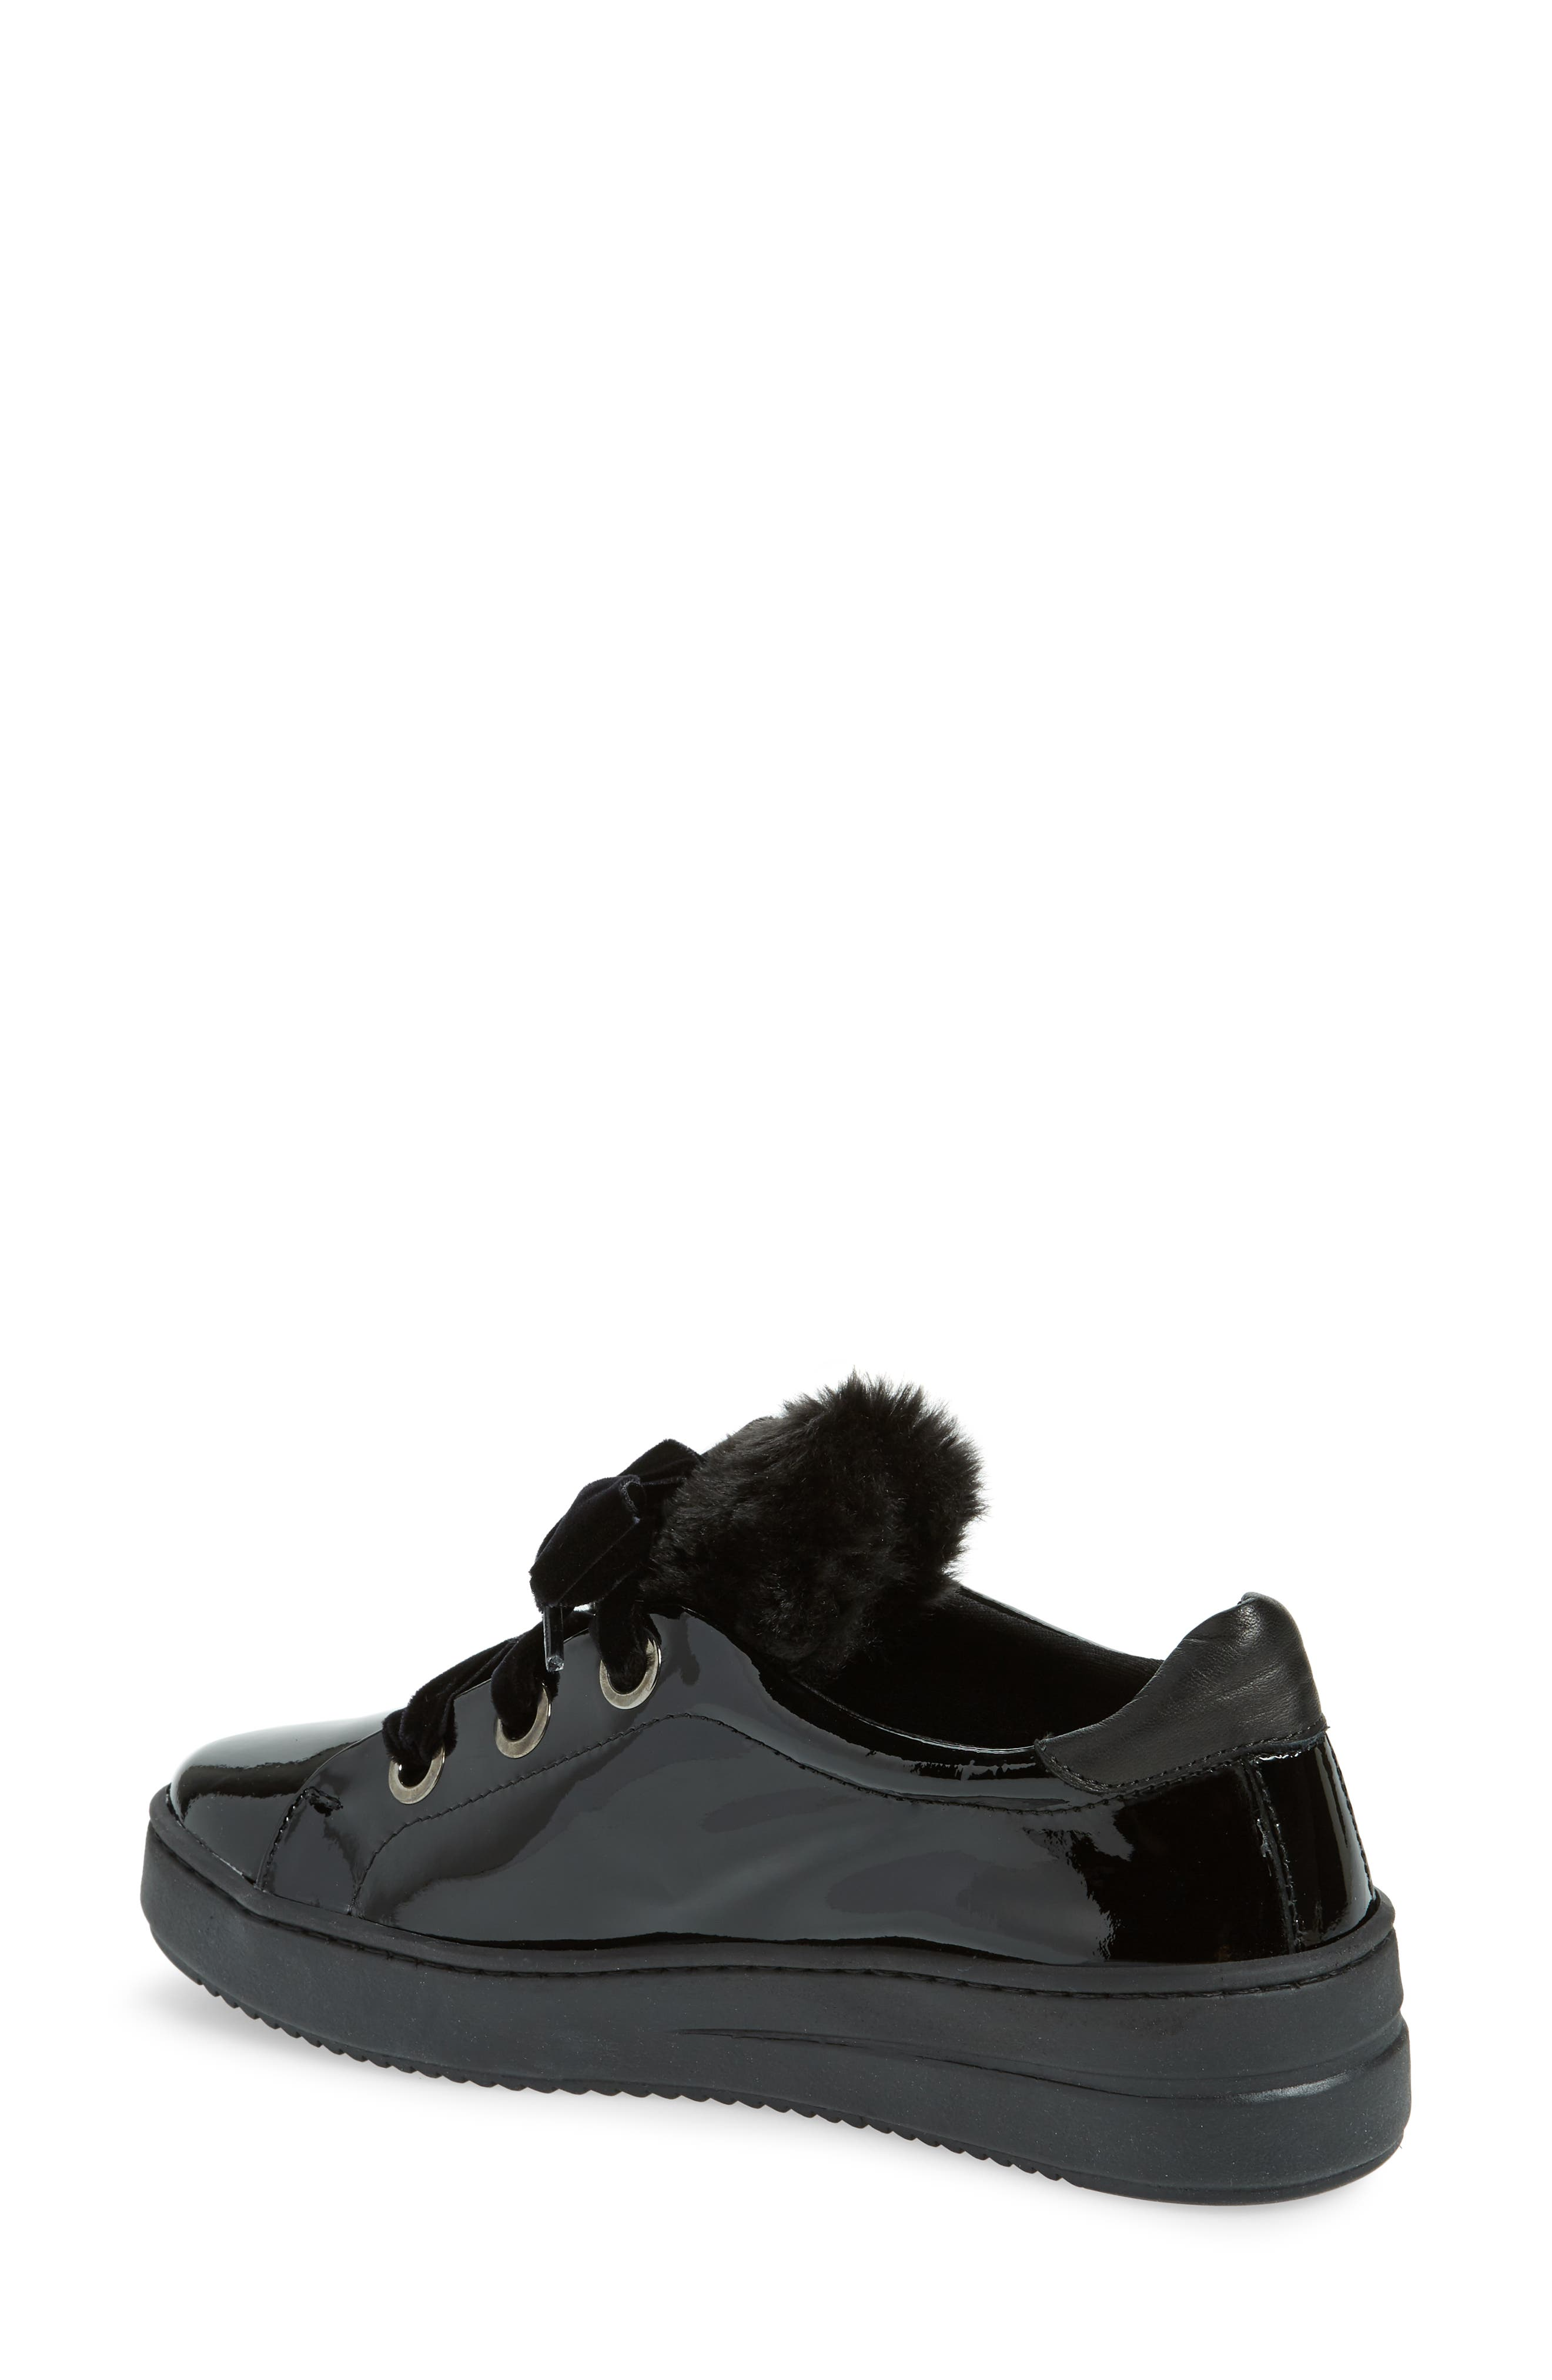 Groove Faux-Shearling Trim Sneaker,                             Alternate thumbnail 2, color,                             BLACK PATENT LEATHER